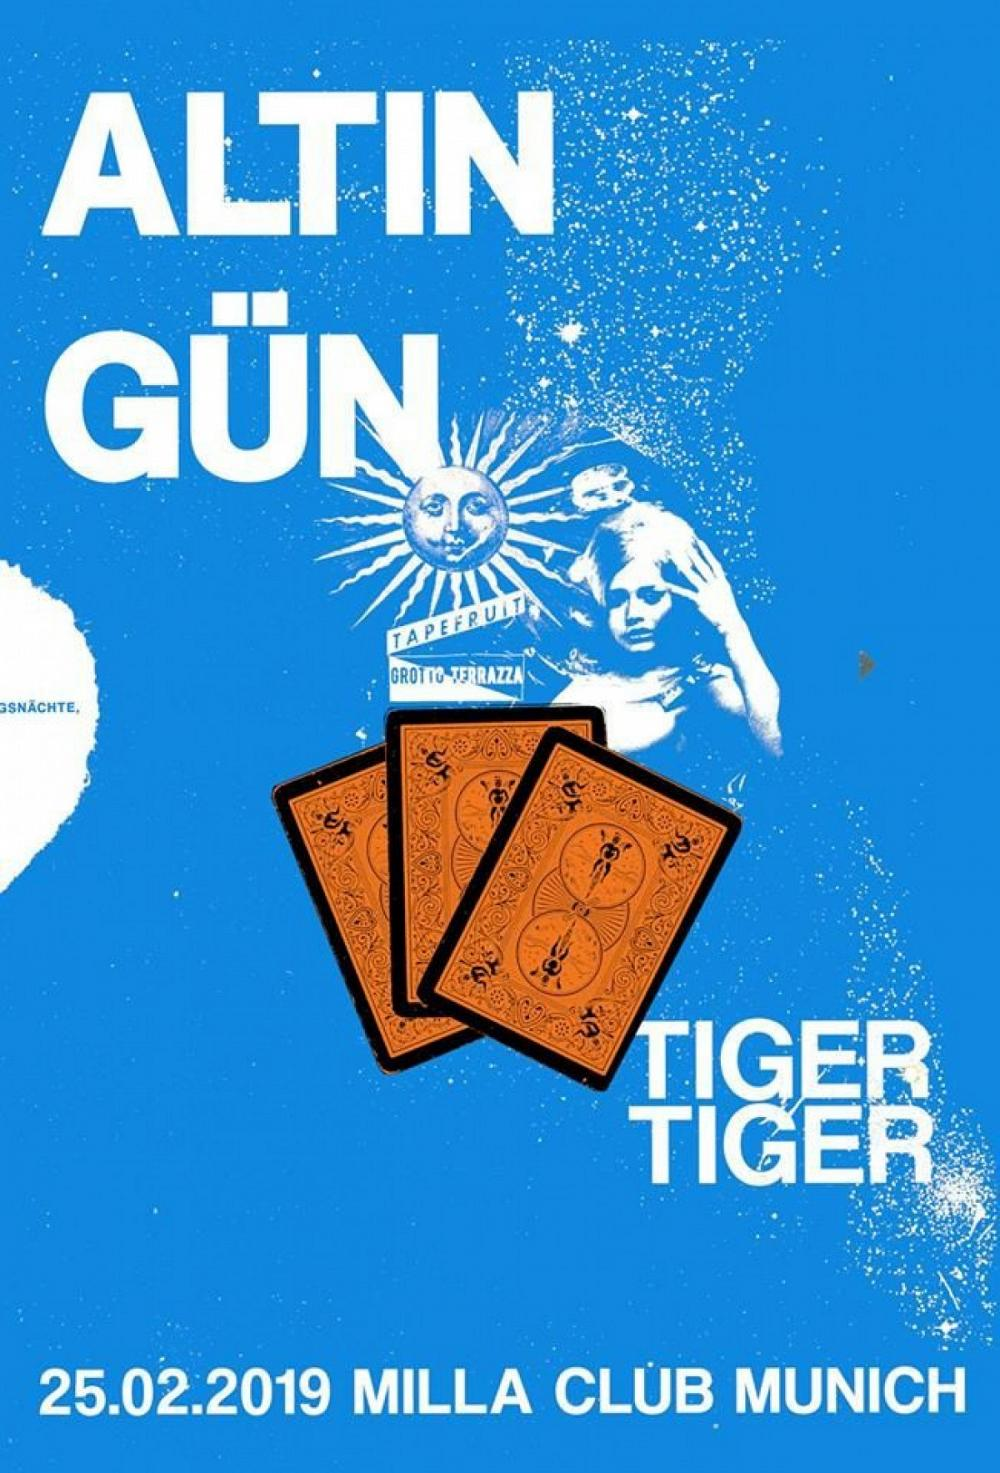 Tapefruit Konzert: Altin Gün + Tiger Tiger | 25.02.2019 @ Milla Club